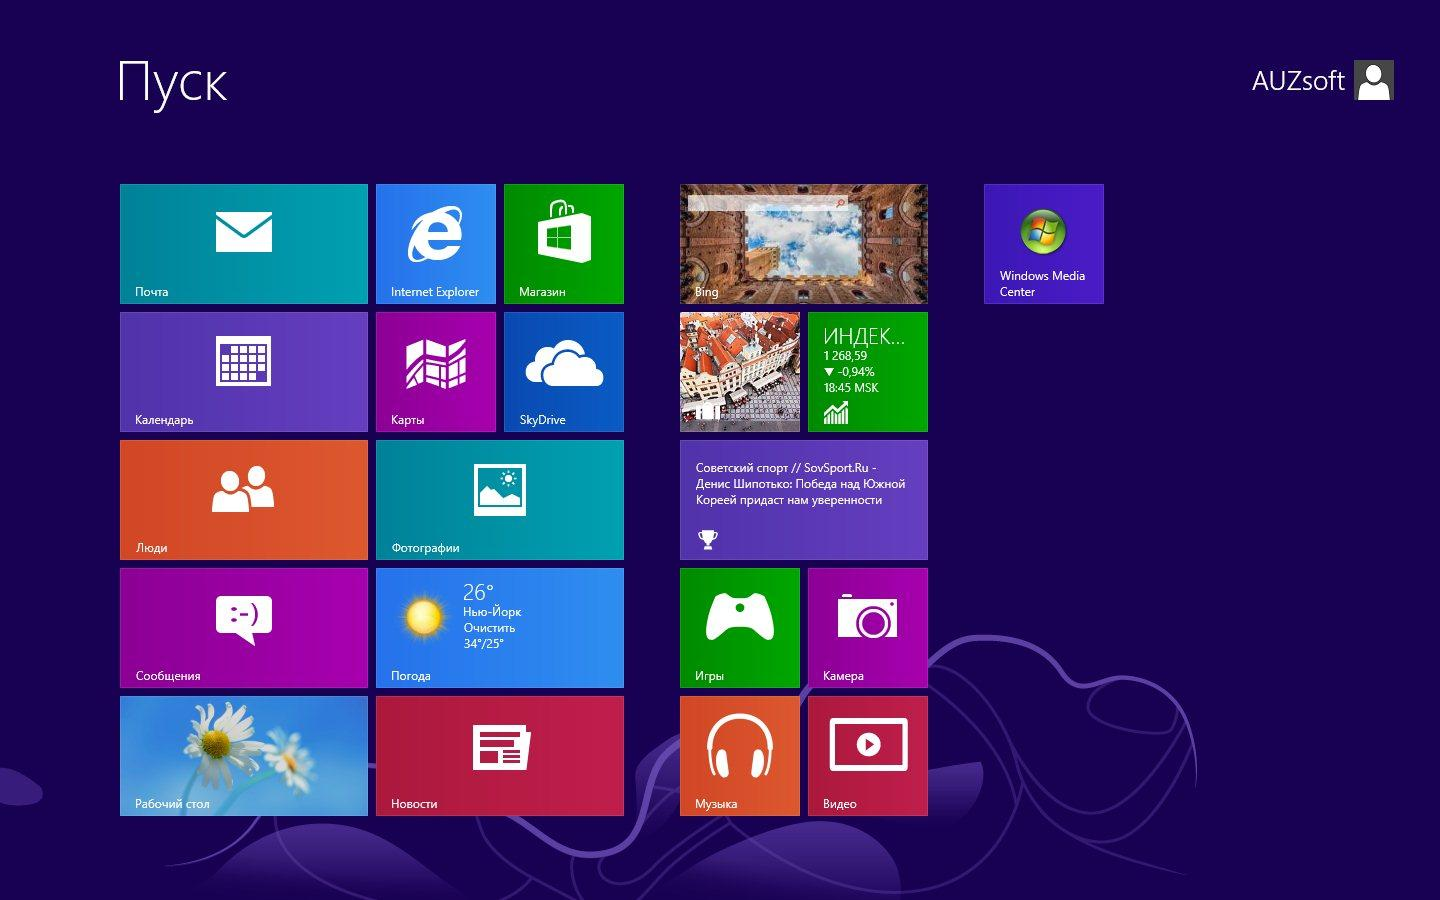 Windows 8 professional wmc auz 1703442.jpg